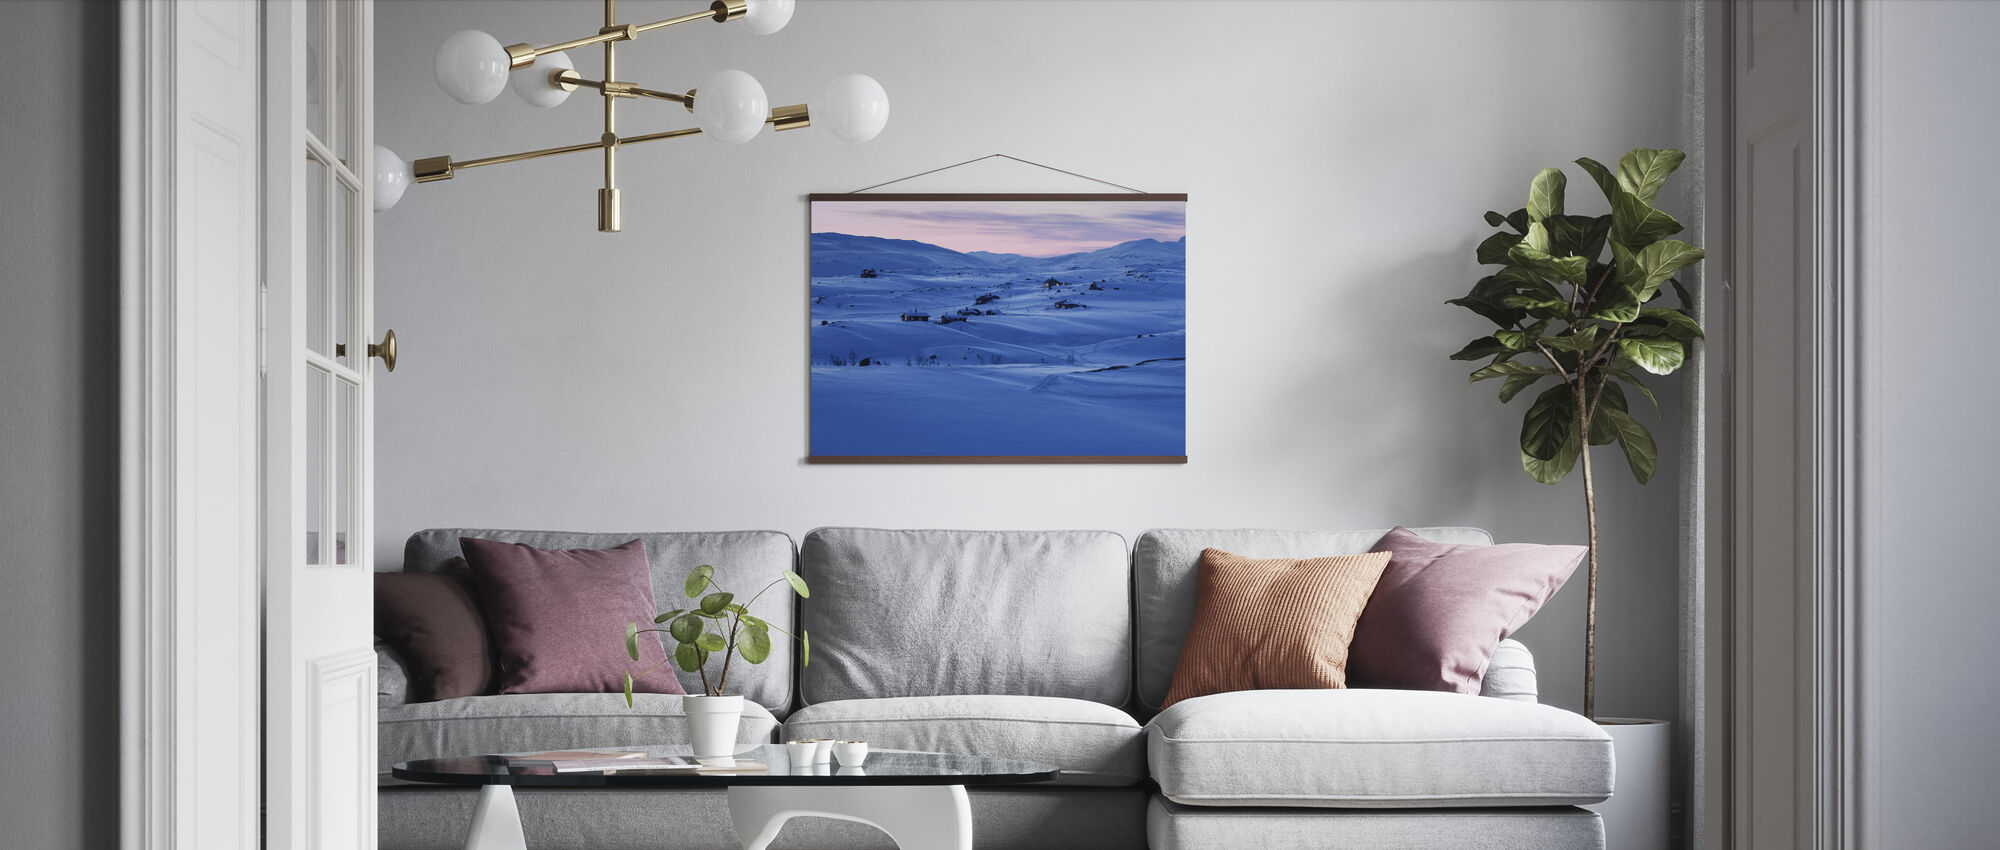 Swedish Lapland - Poster - Living Room